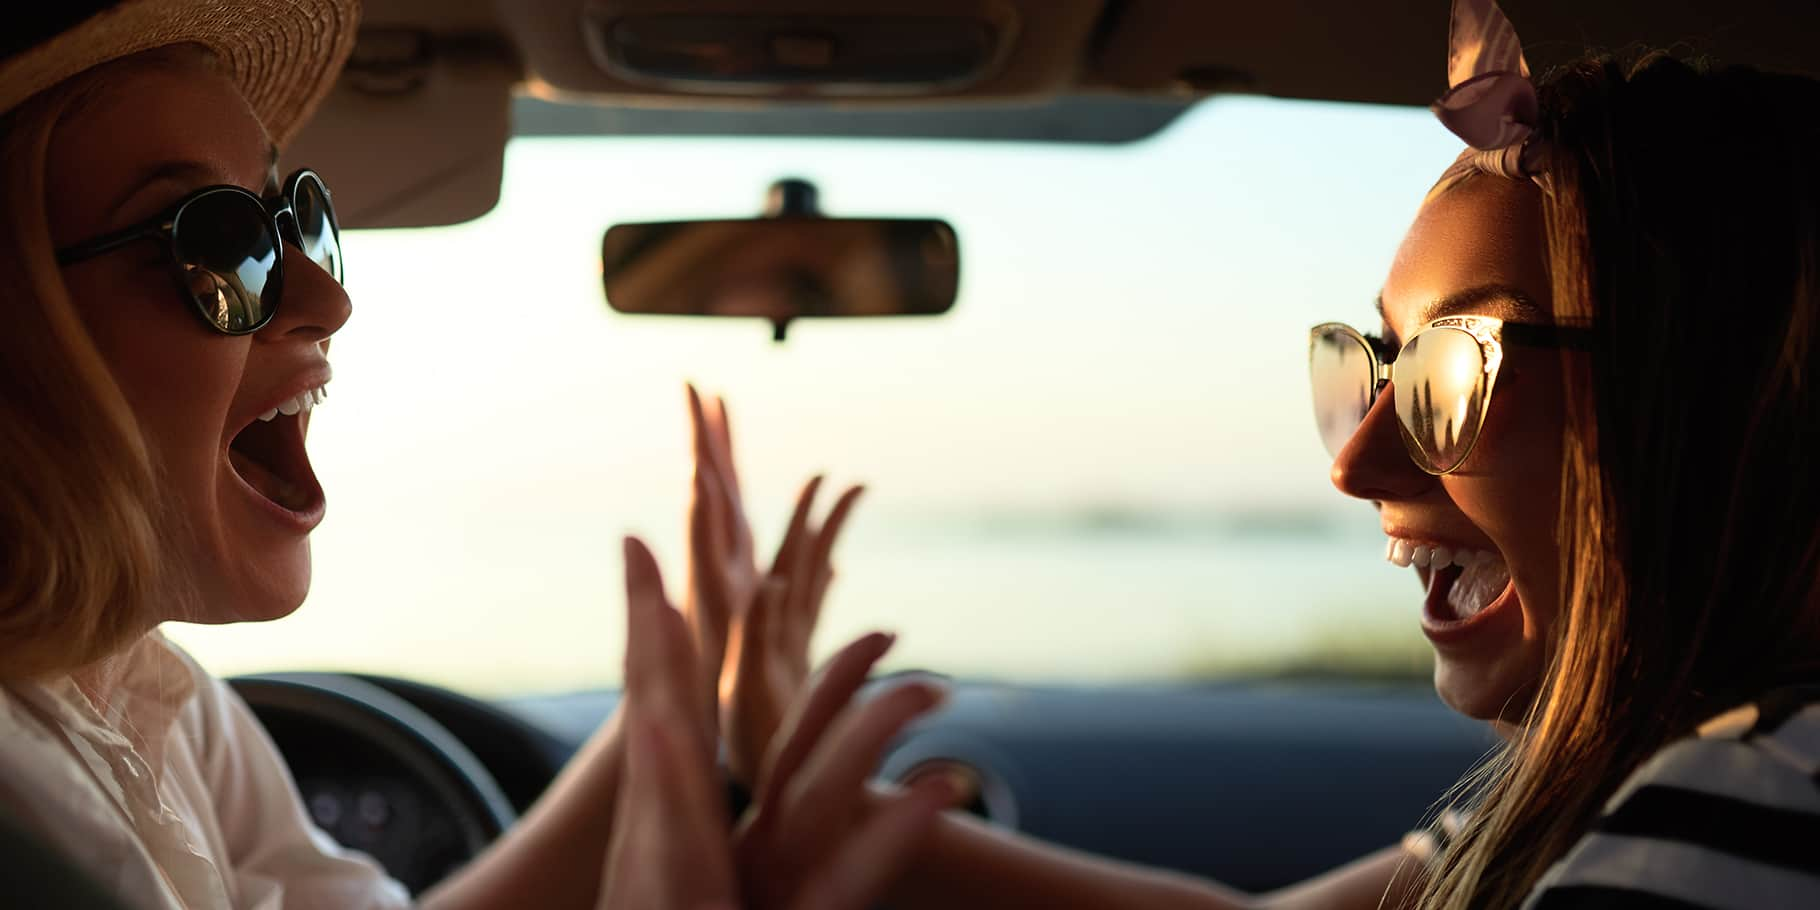 Two women giving eachother high-fives inside a car.